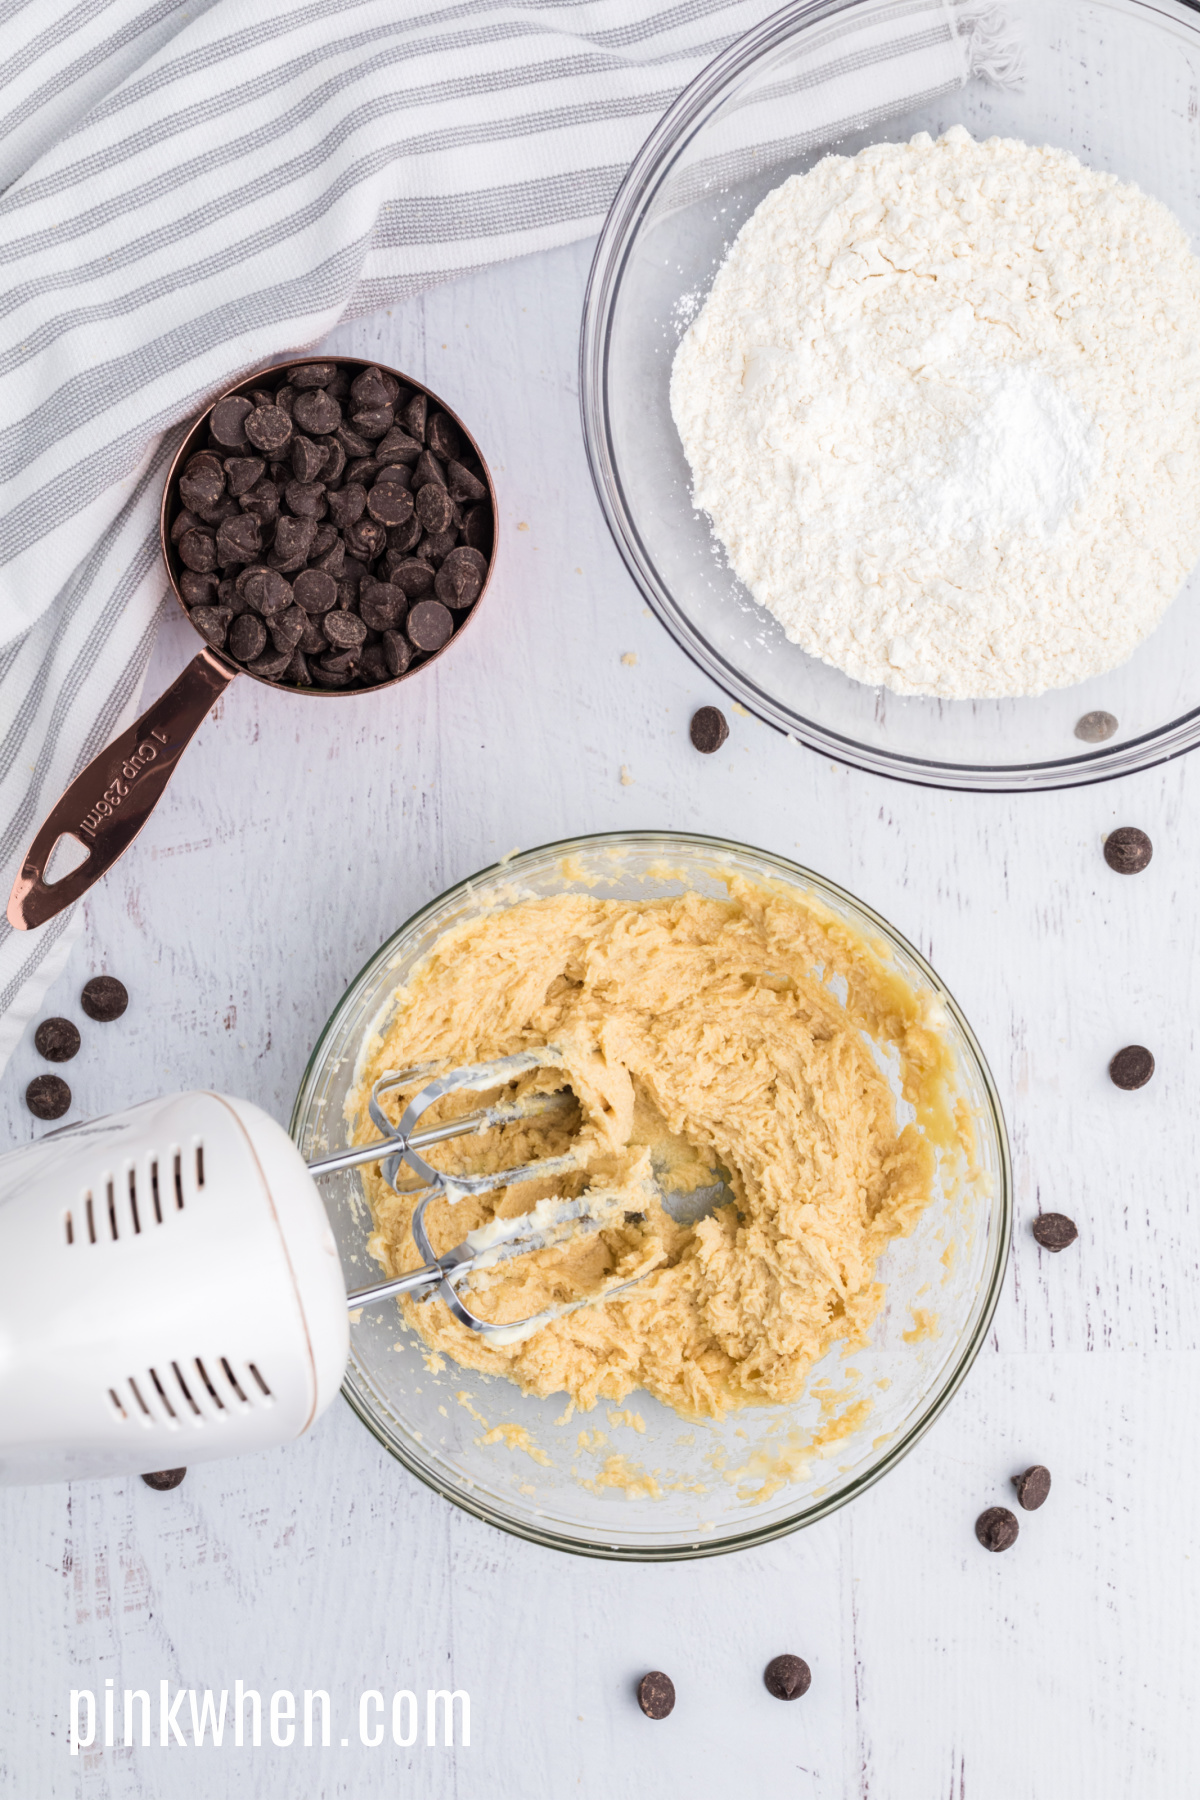 Butter, sugars, egg, and vanilla creamed together in a mixing bowl.